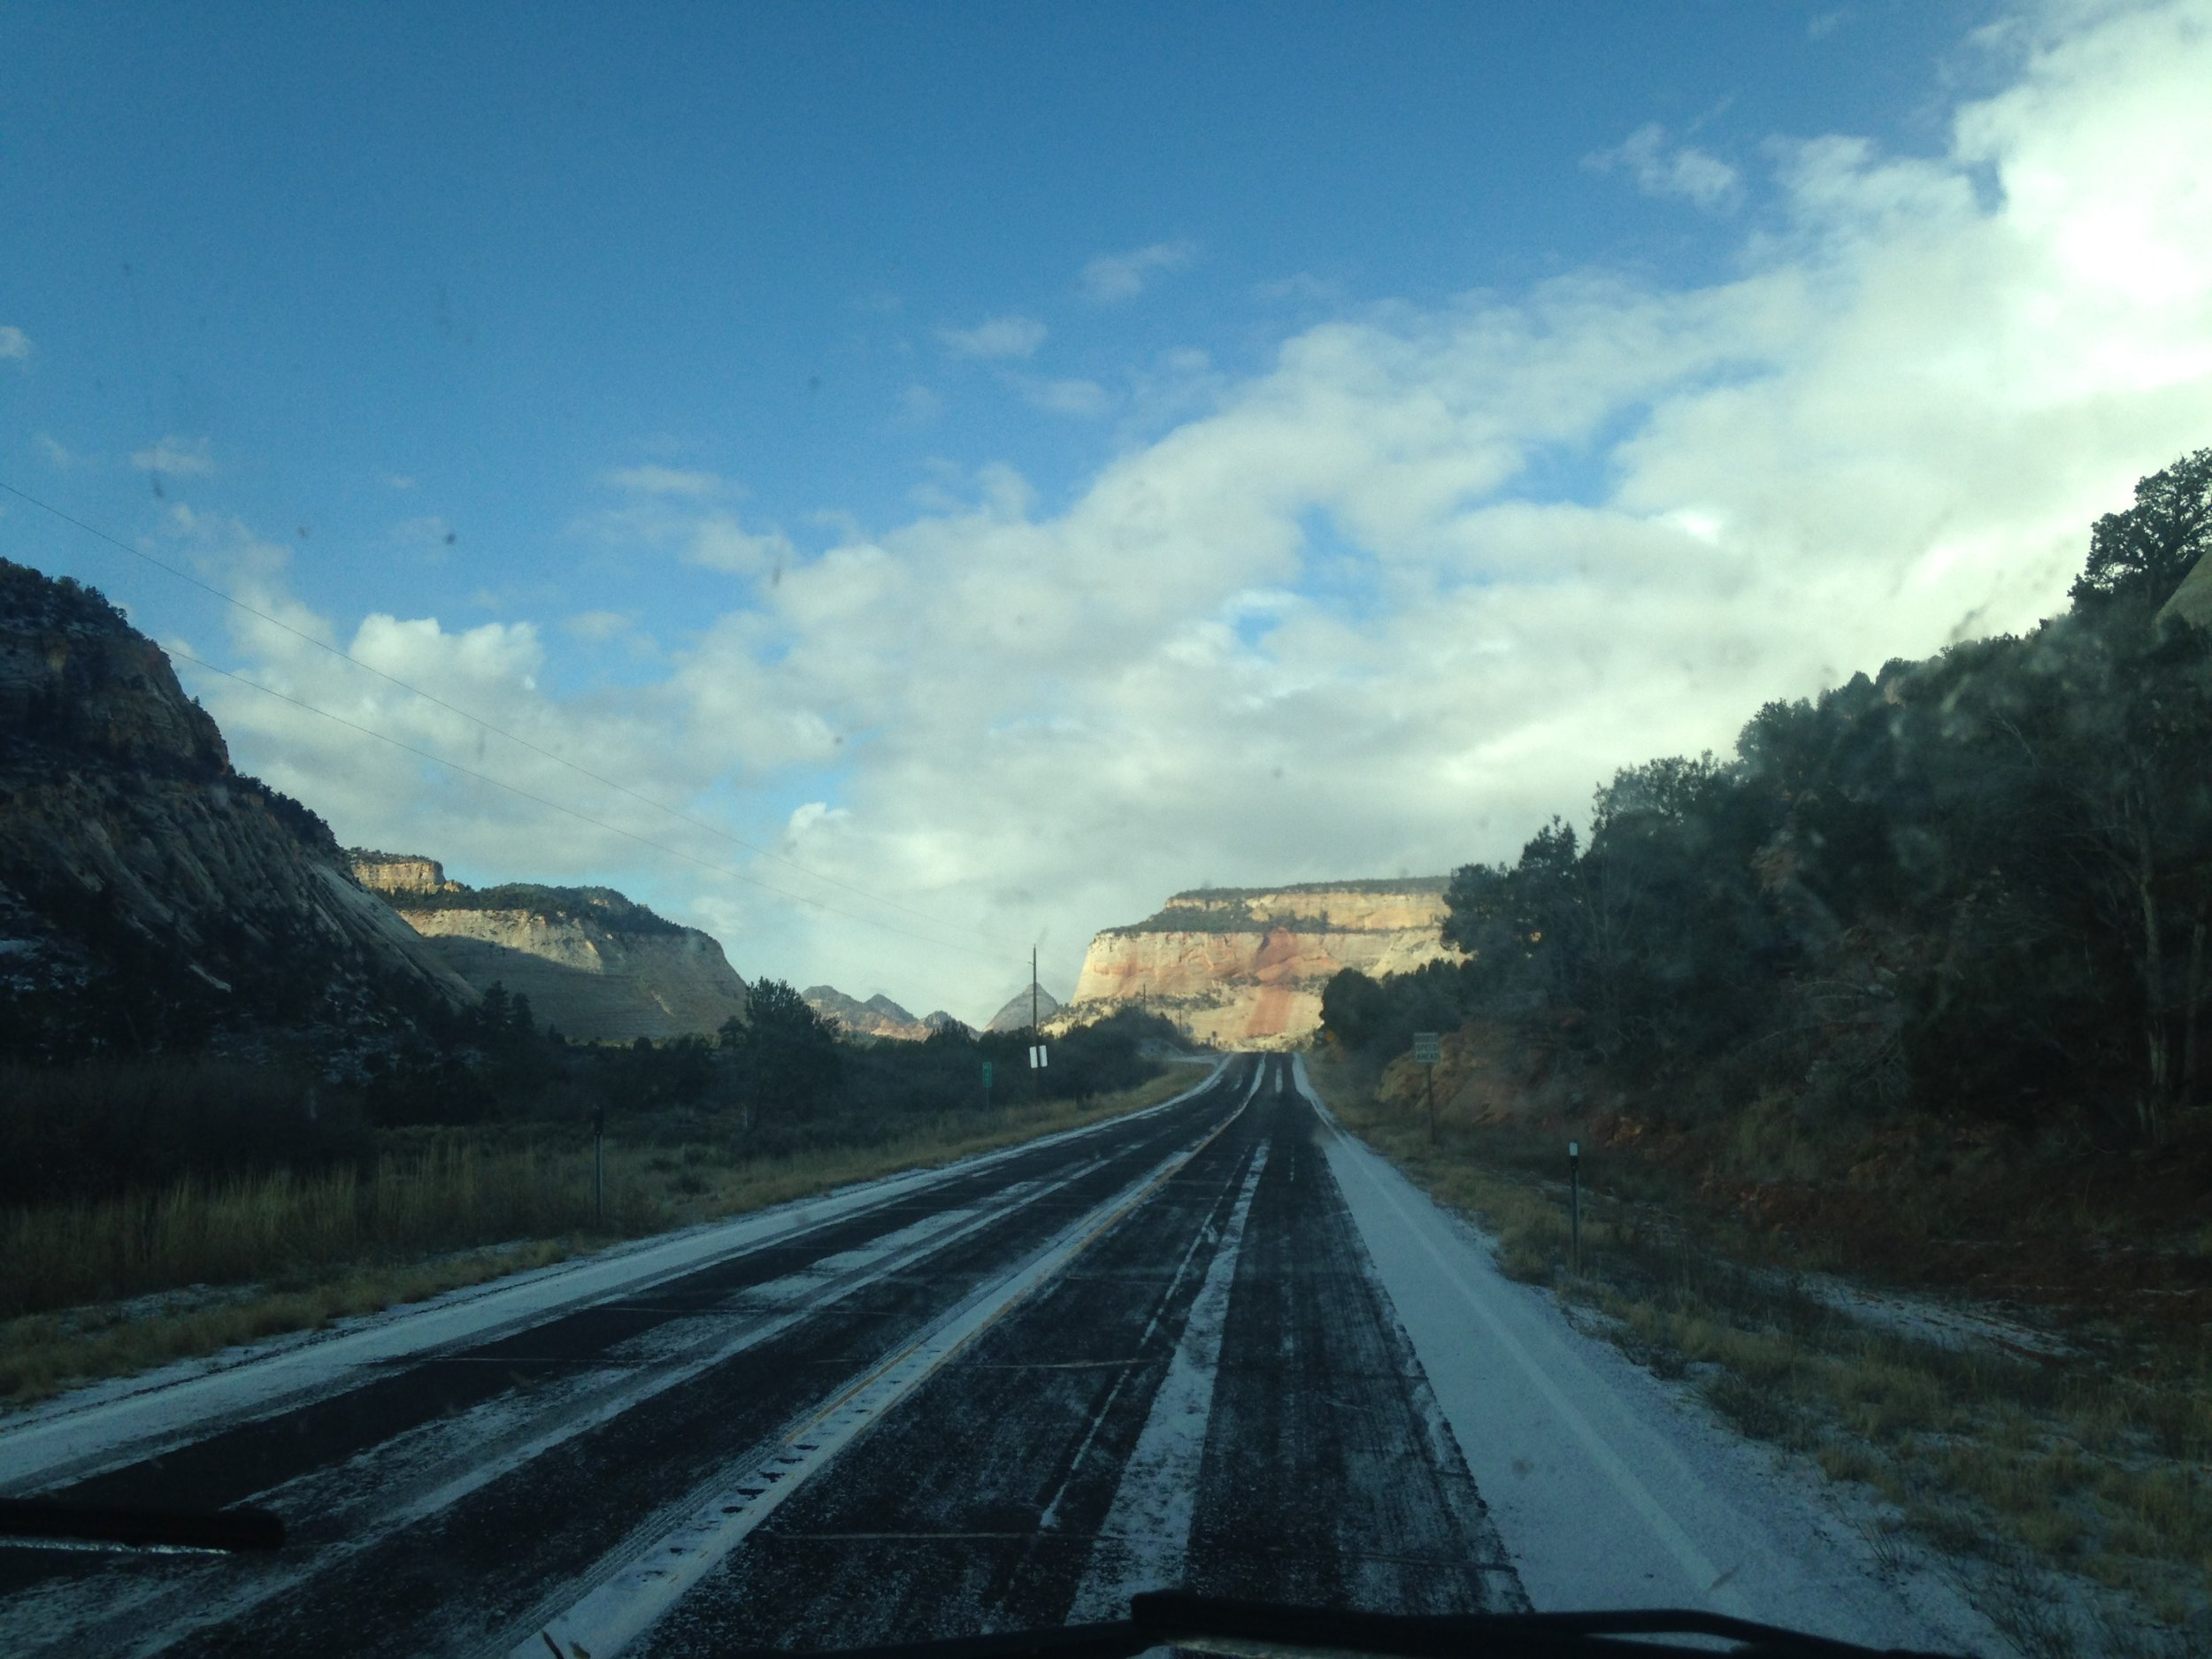 Zion before the snow storm